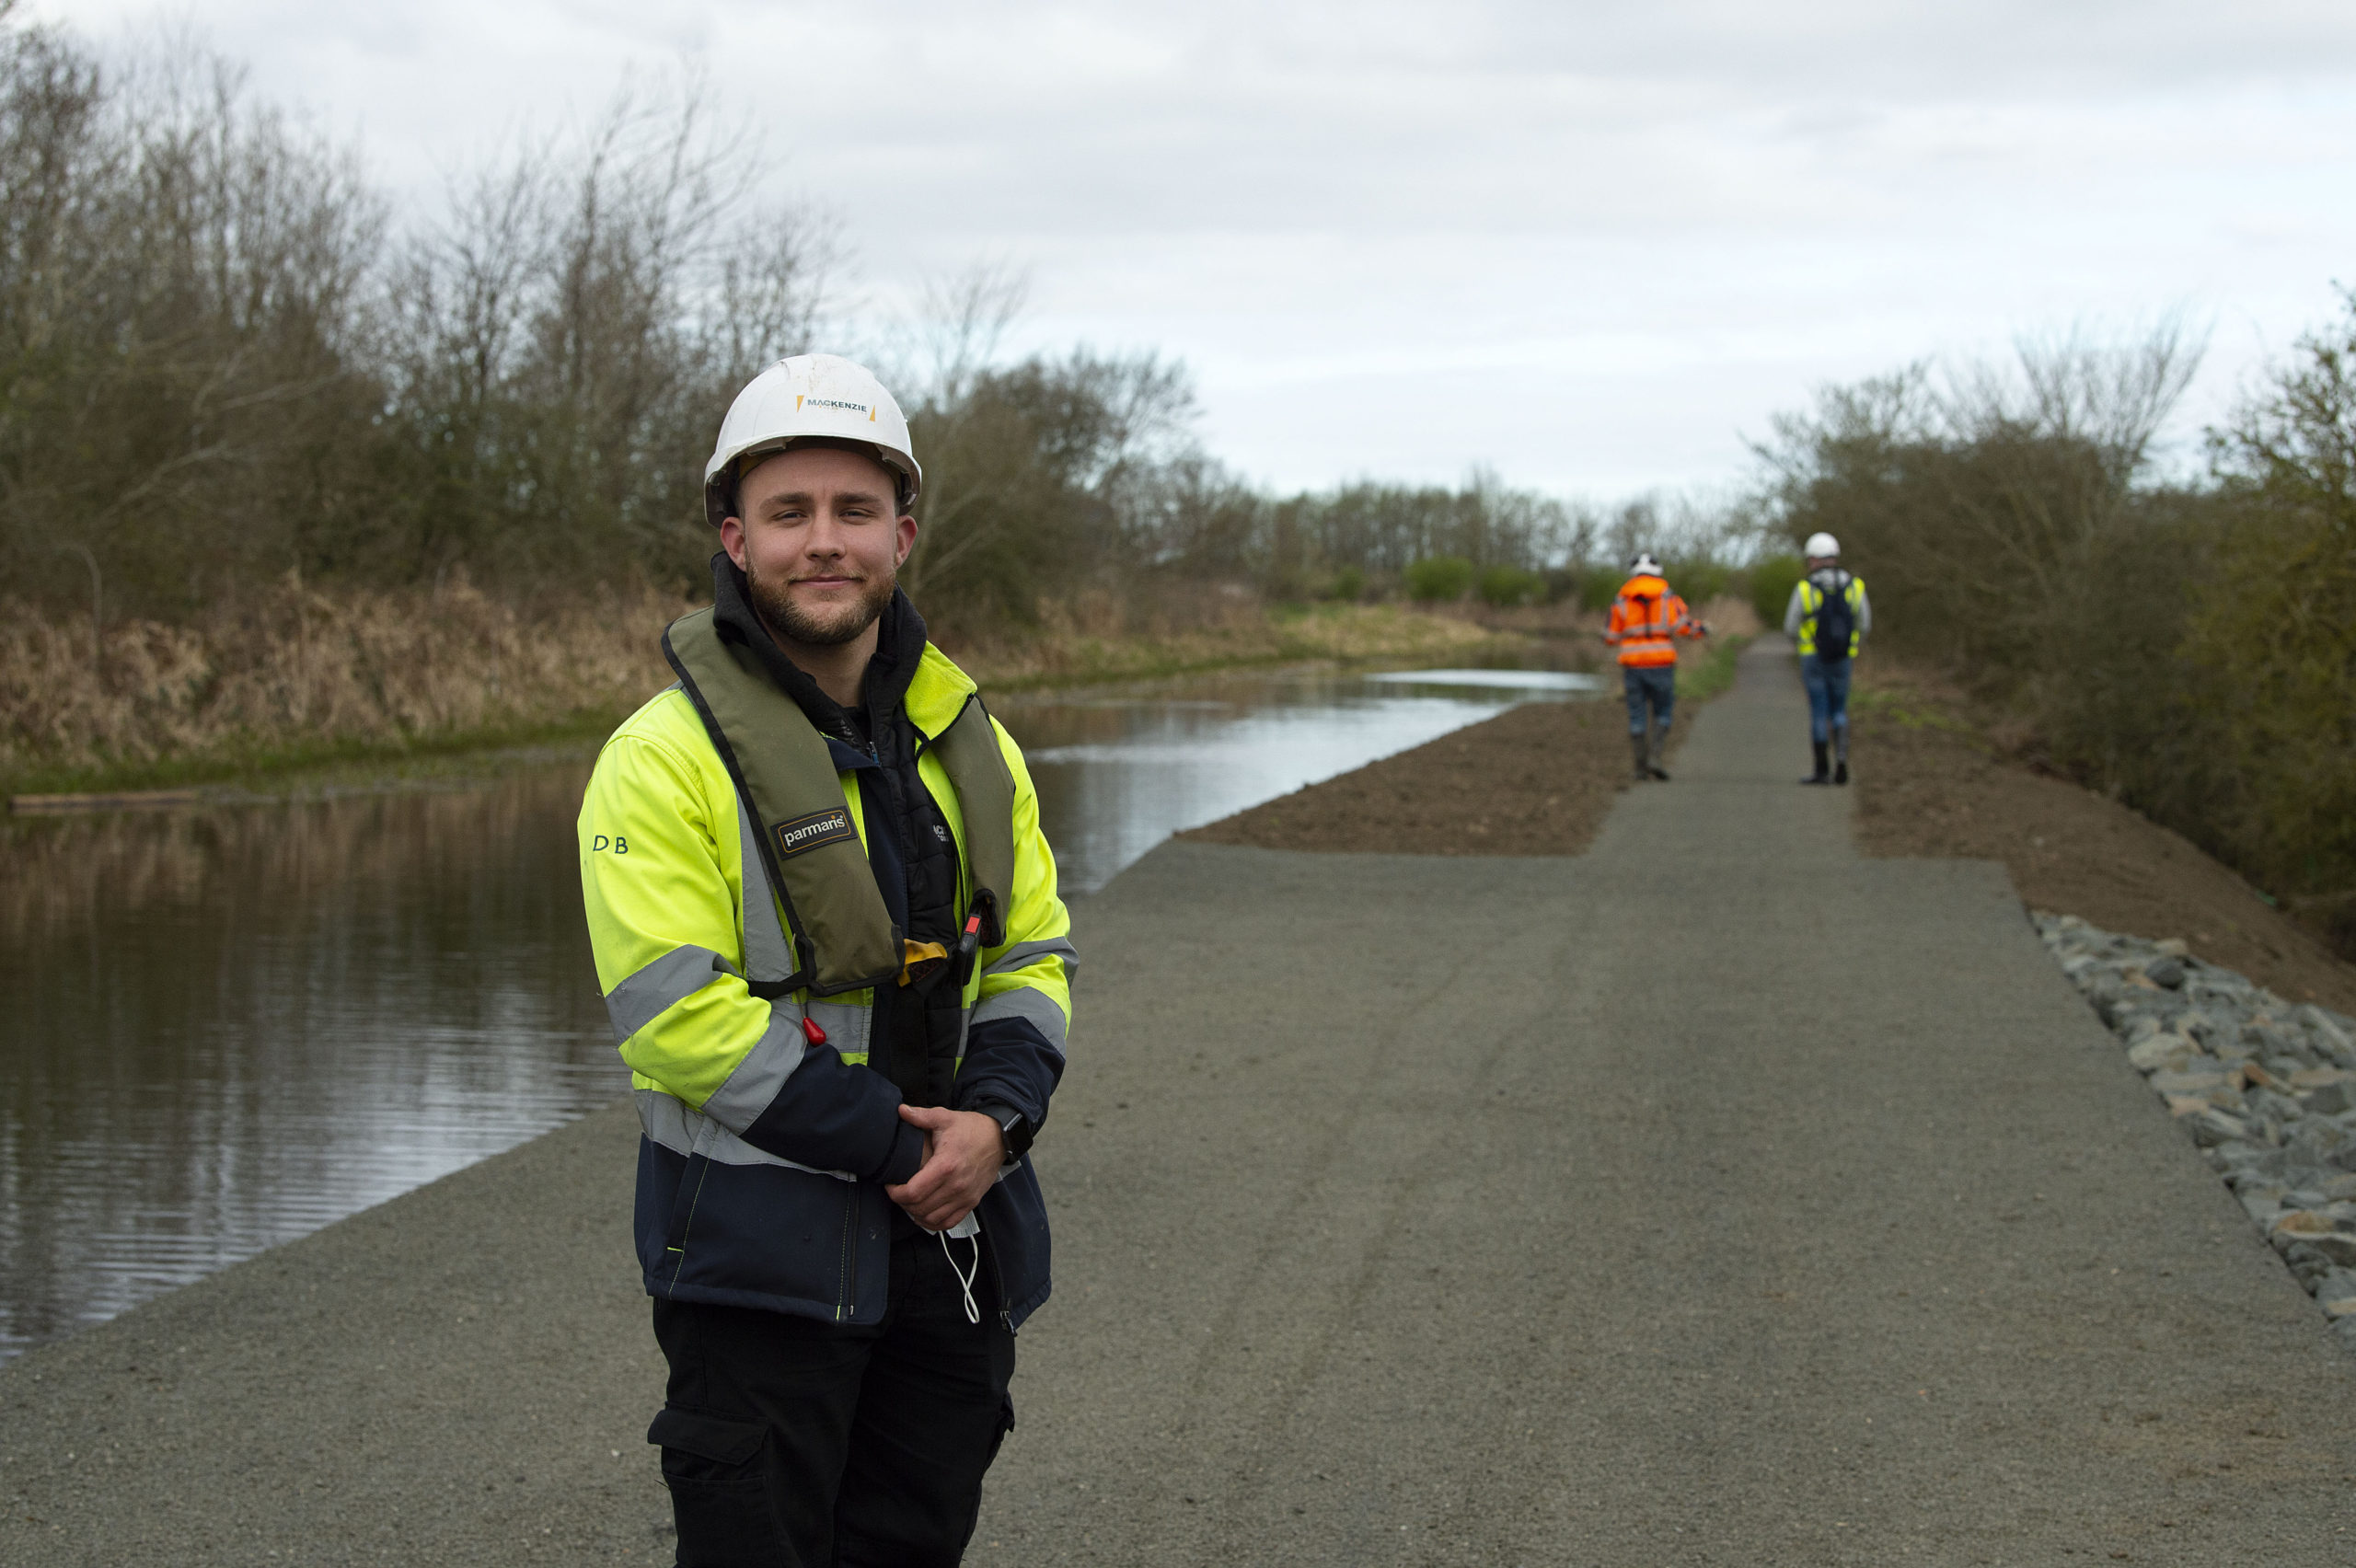 A collaborative effort: responding to the Union Canal breach